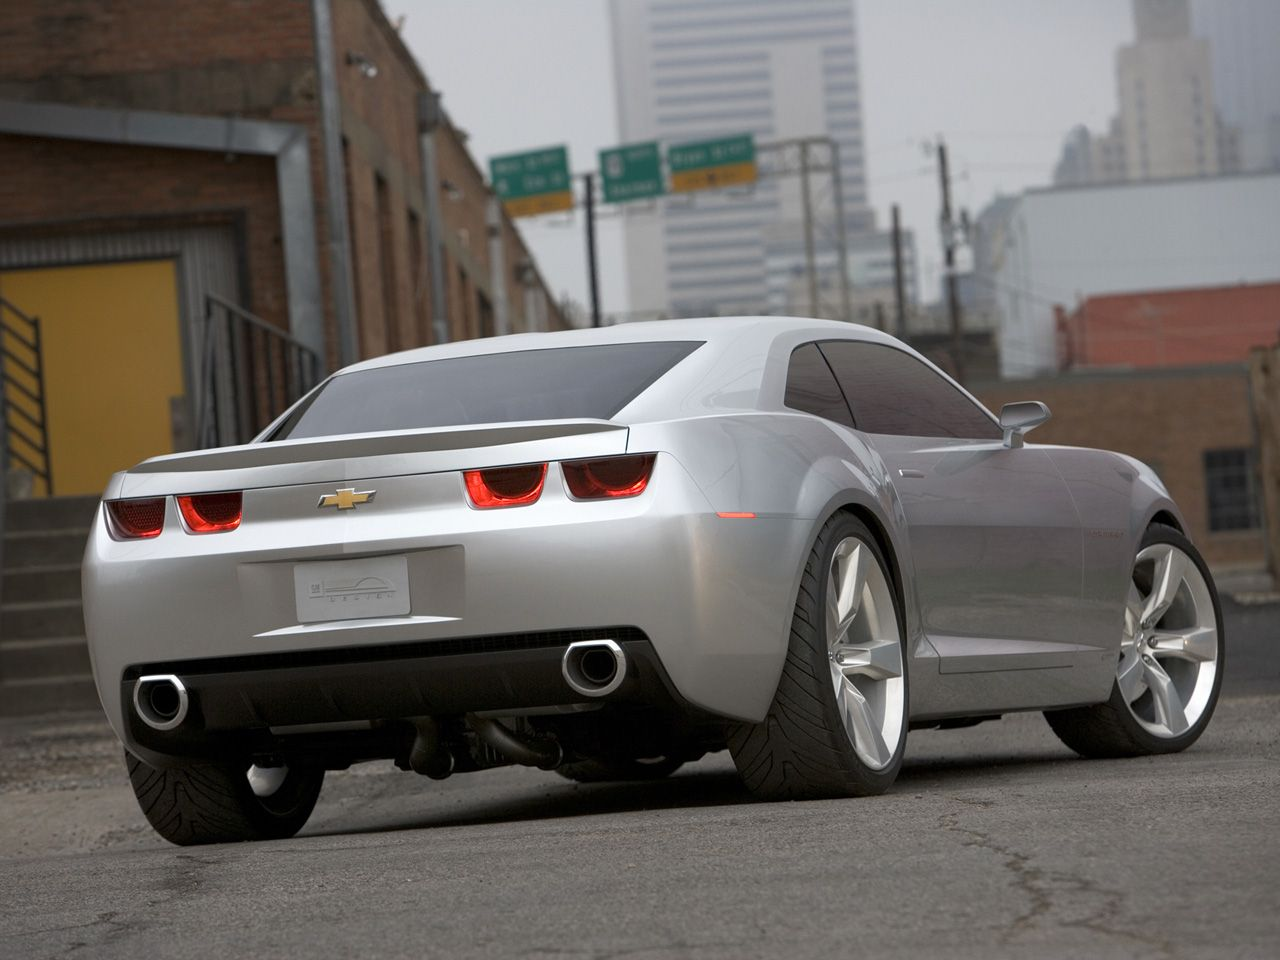 Chevrolet Camaro Concept Car Pictures And Wallpapers 3262